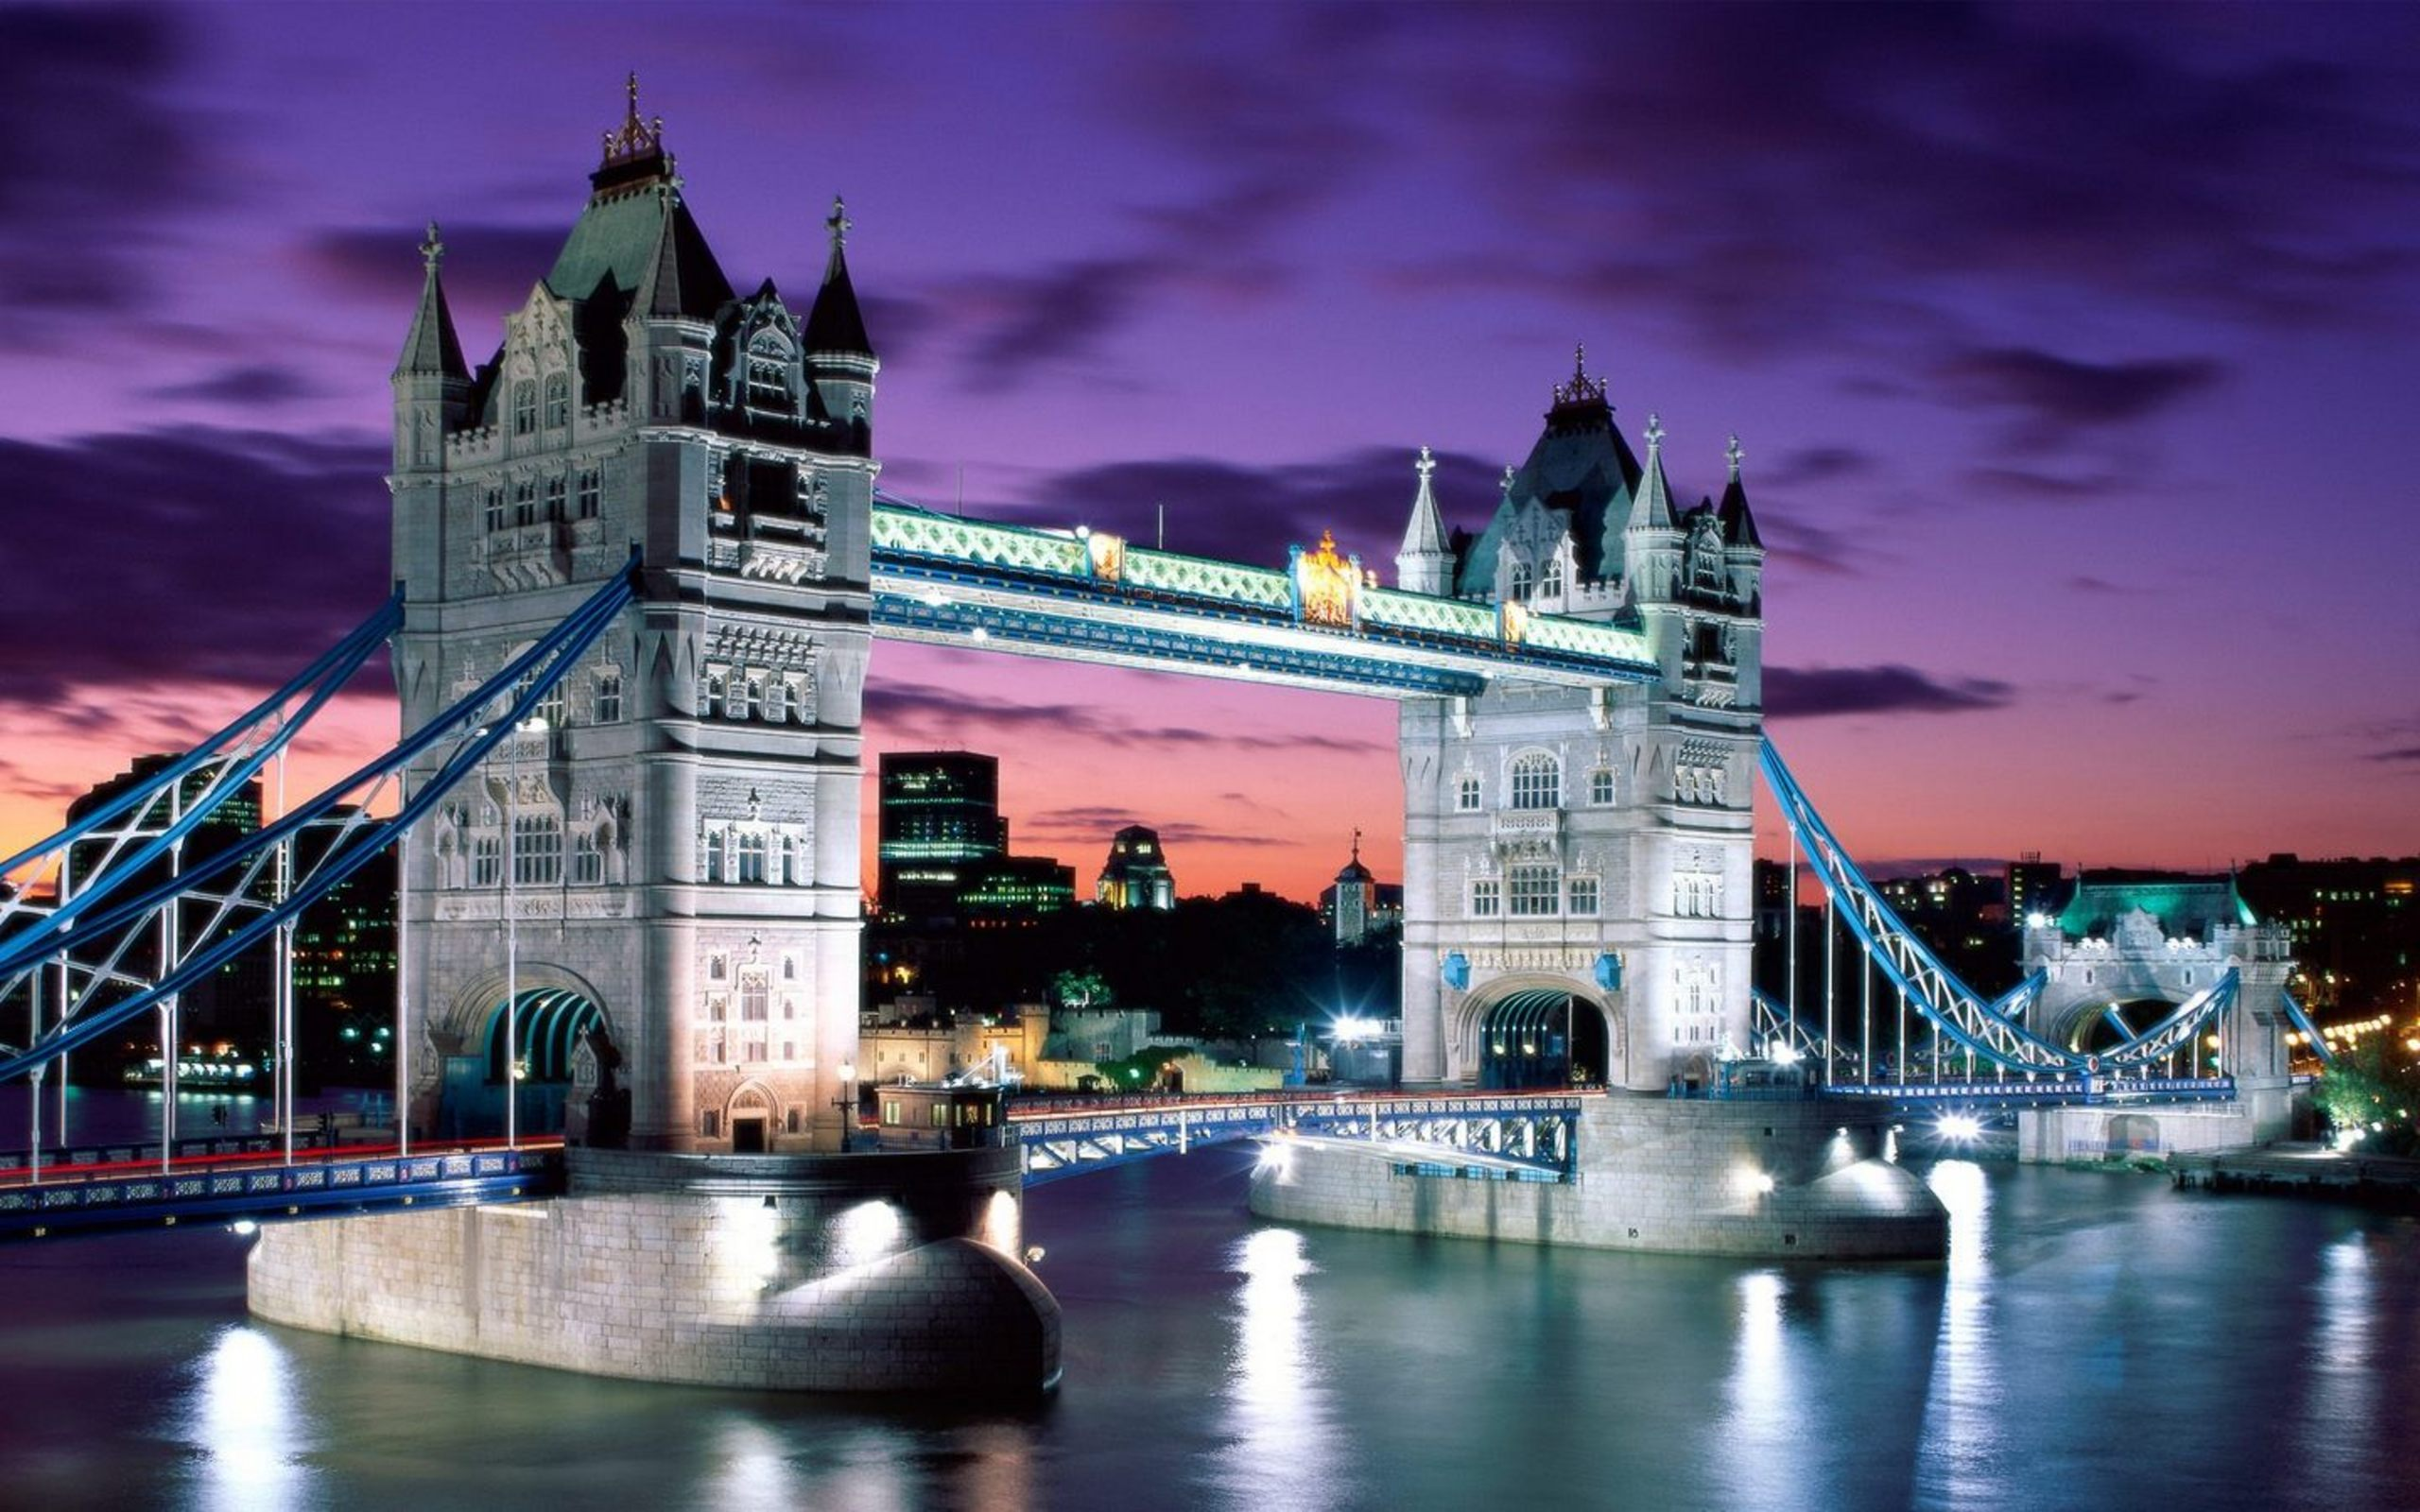 Tower Bridge England Wallpapers HD Wallpapers 2560x1600